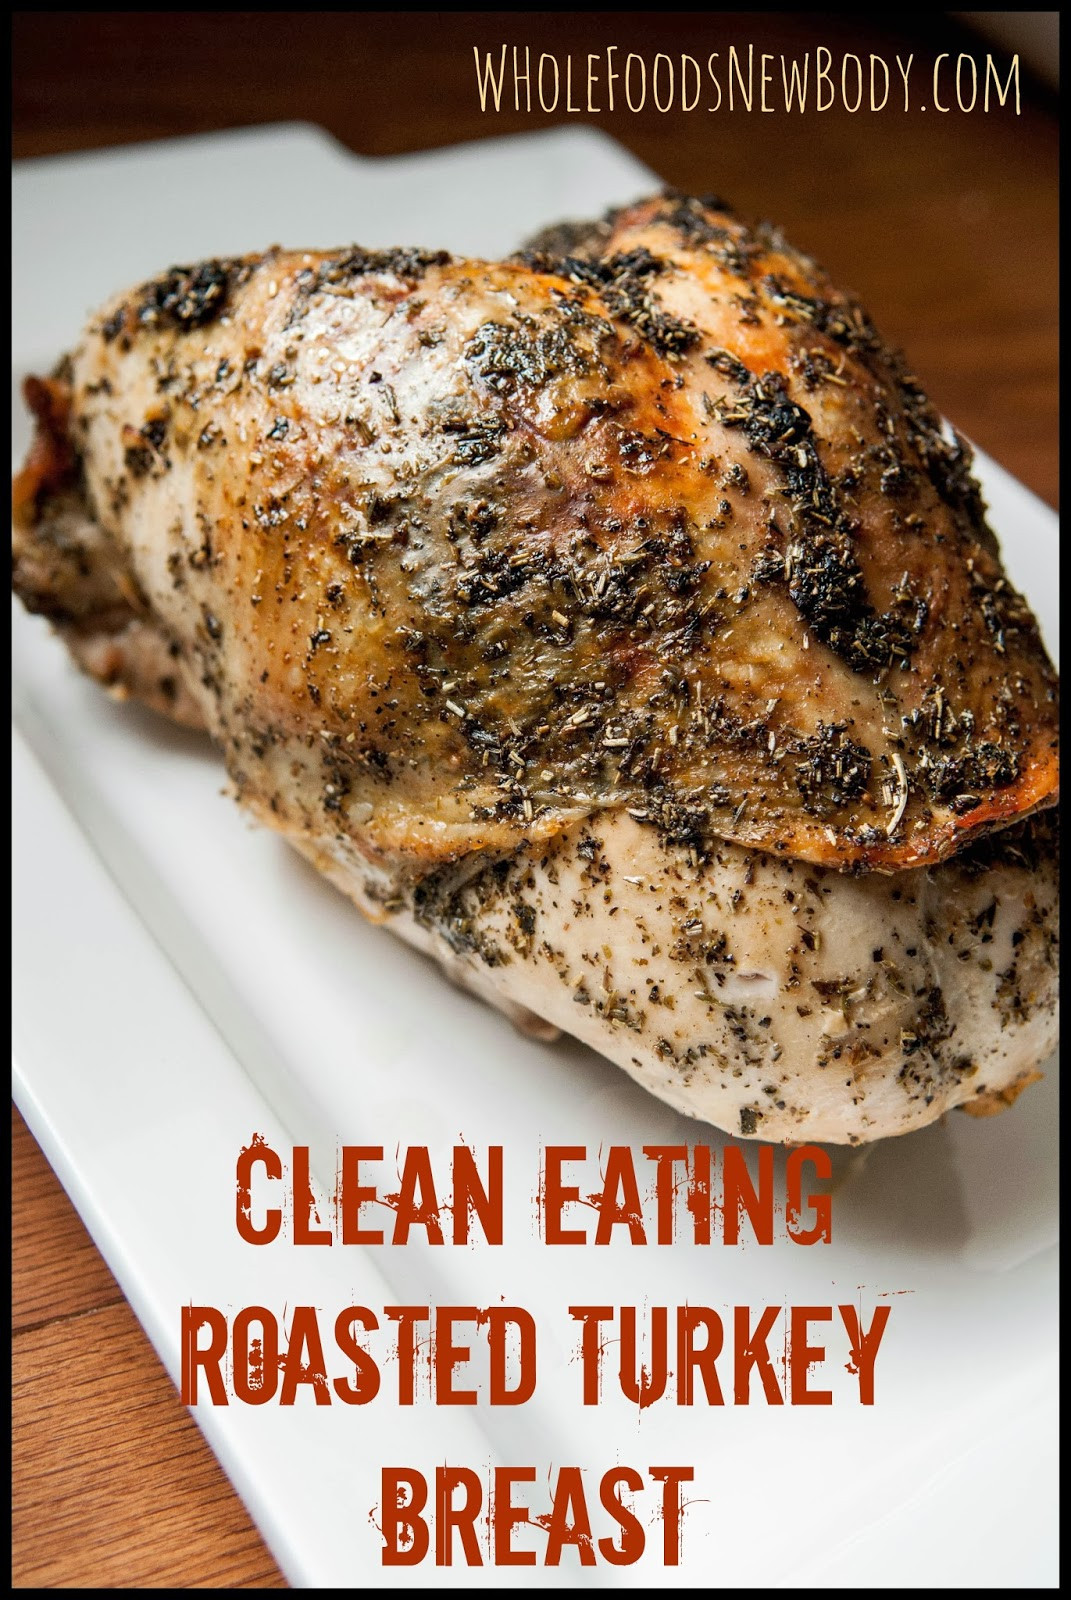 Whole Foods Turkey Thanksgiving  Whole Foods New Body Clean Eating Roasted Turkey Breast